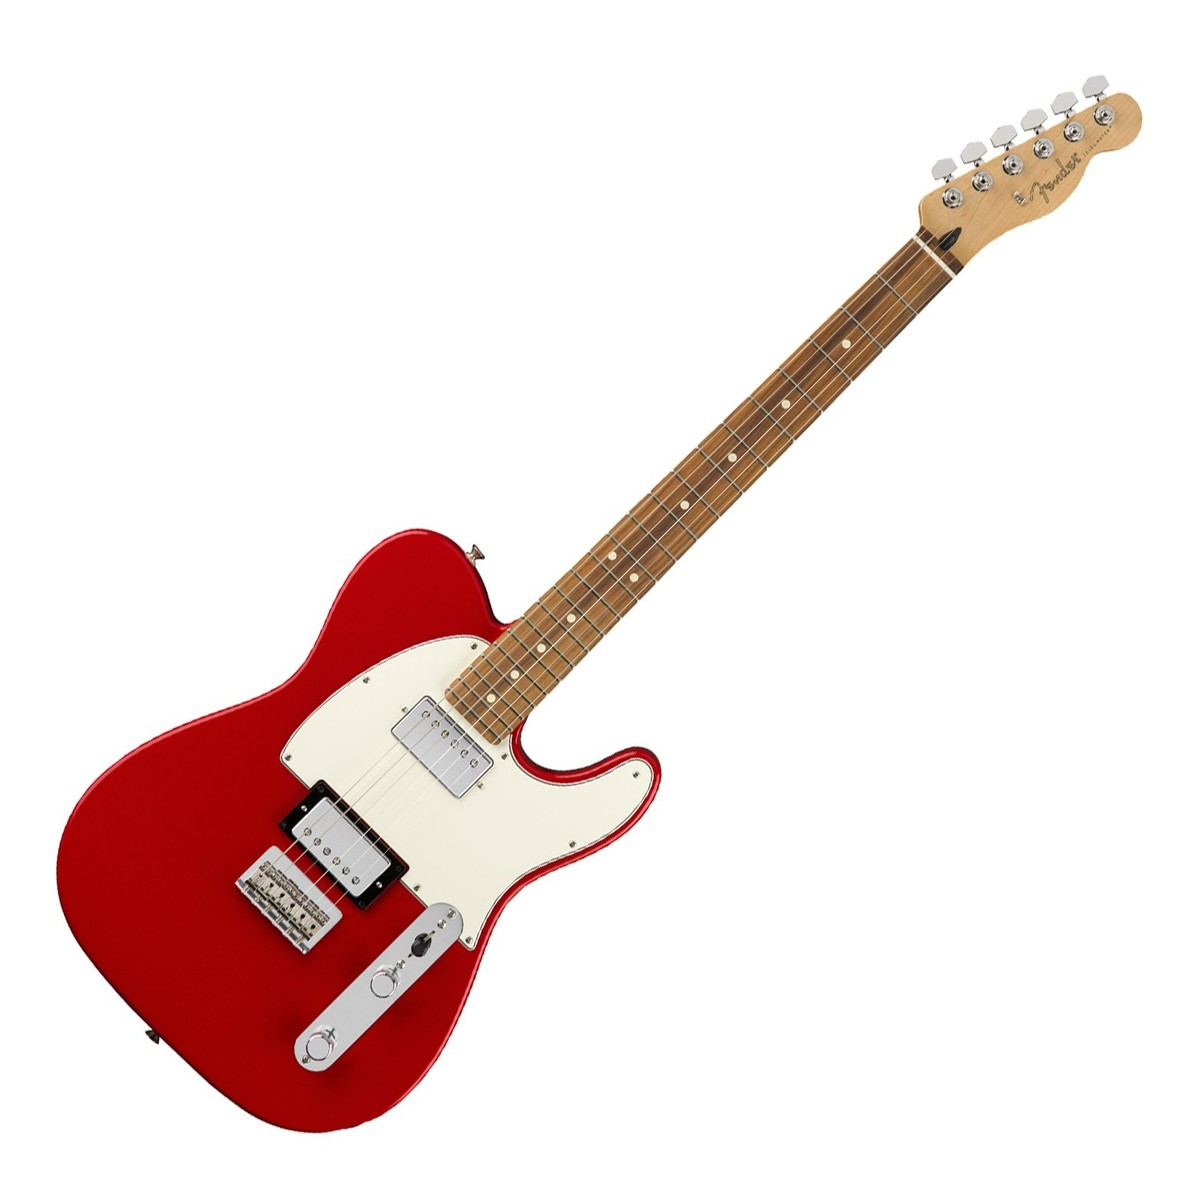 Fender Telecaster Hh >> Fender Player Telecaster Hh Pf Sonic Red